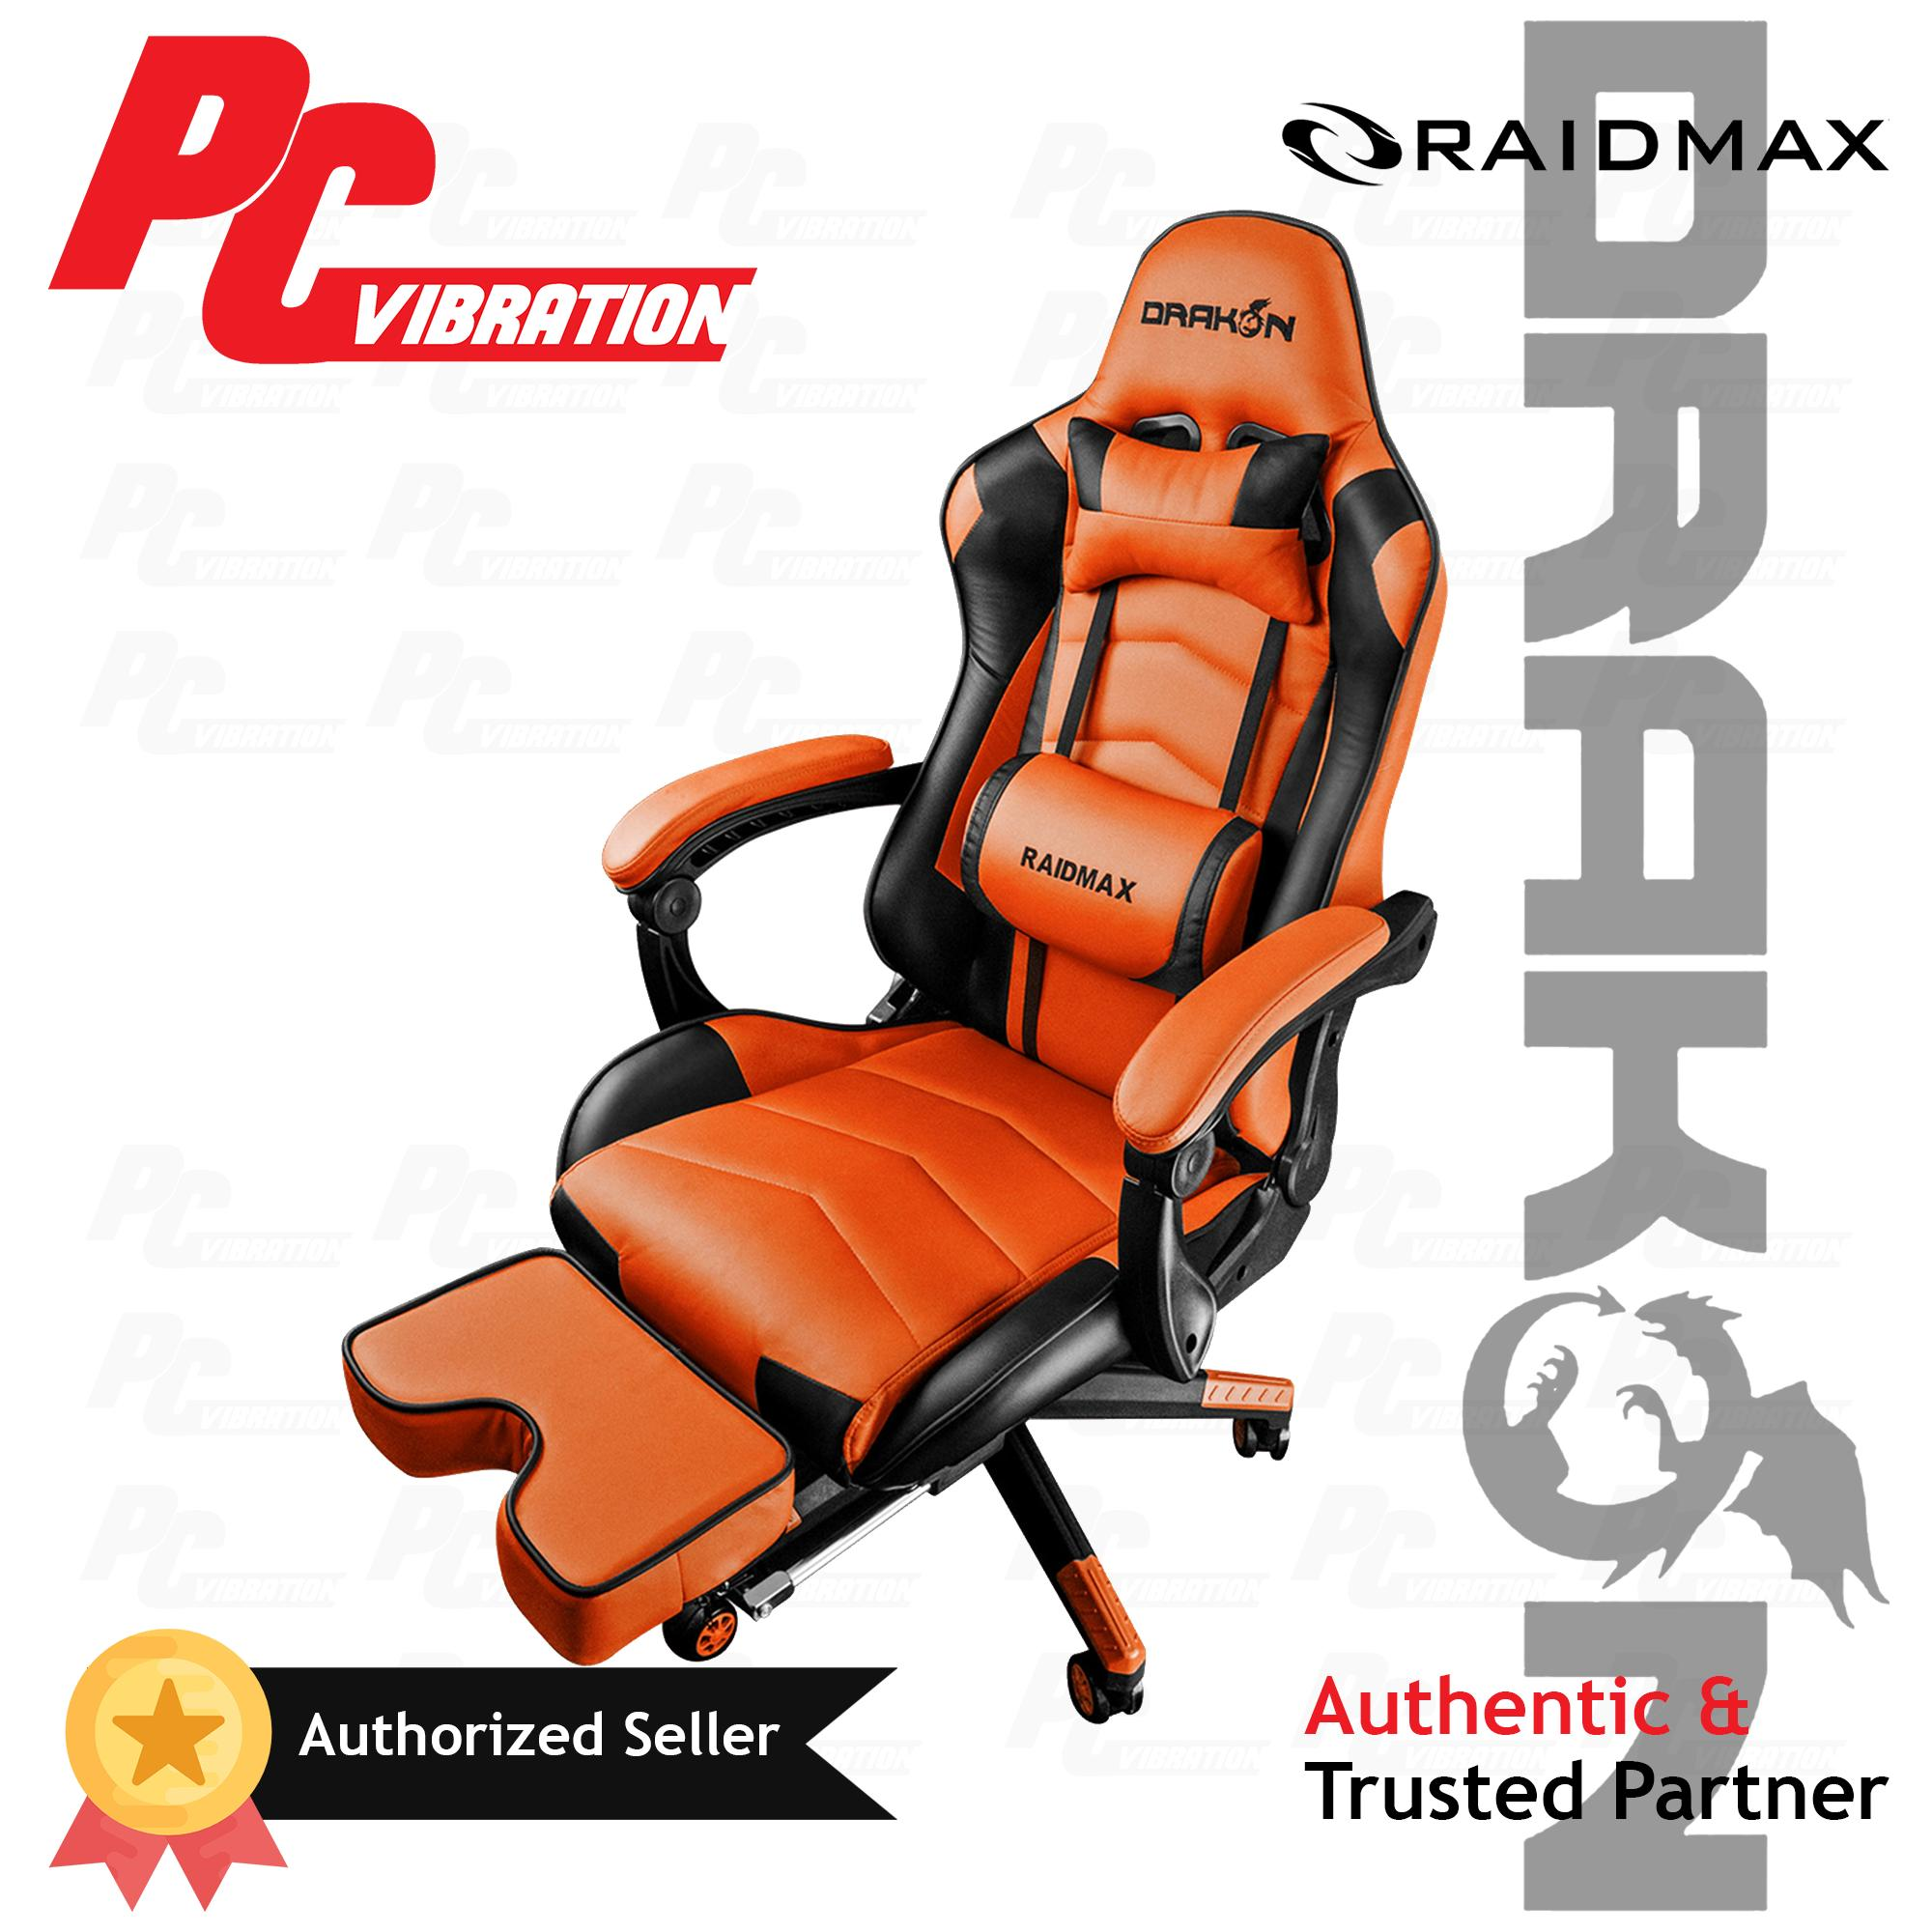 Video Game Chairs For Sale Gaming Room Prices Brands Dxracer Racing Series Oh Rv131 No Black Orange Raidmax Drakon Dk709 Chair